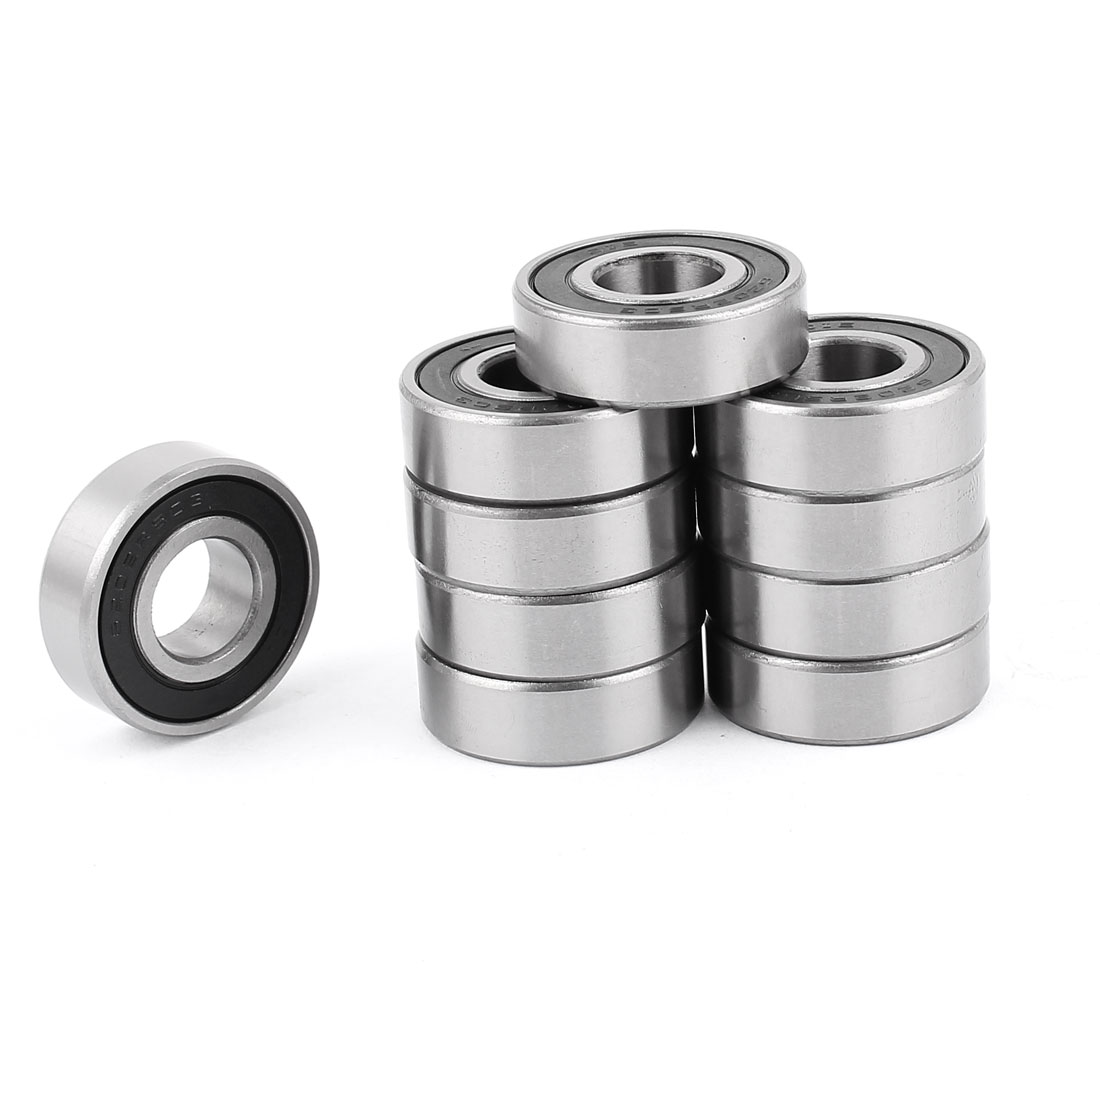 6202RSC3 Deep Groove Ball Bearing Replacement 10 Pcs for Roller-skating Sport